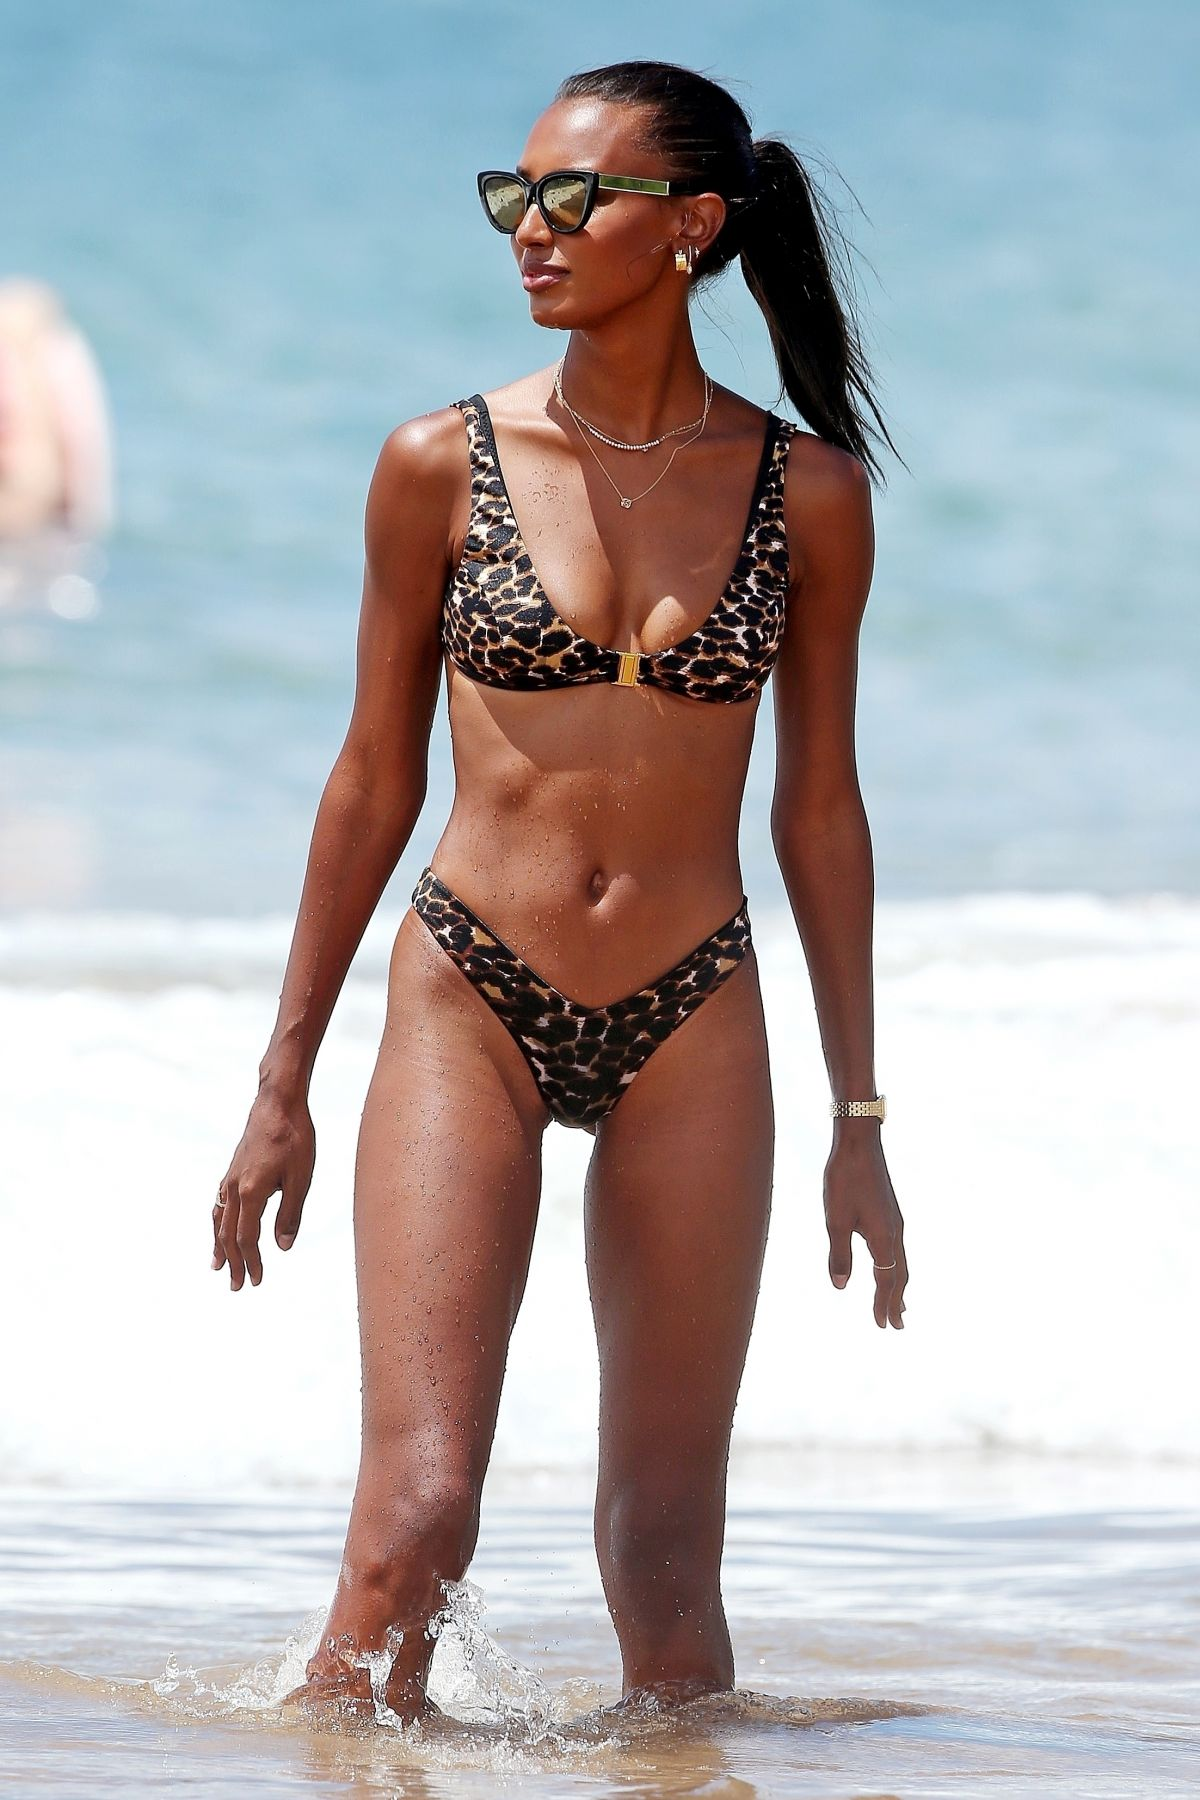 Bikini Jasmine Tookes naked (85 photo), Ass, Paparazzi, Selfie, braless 2006